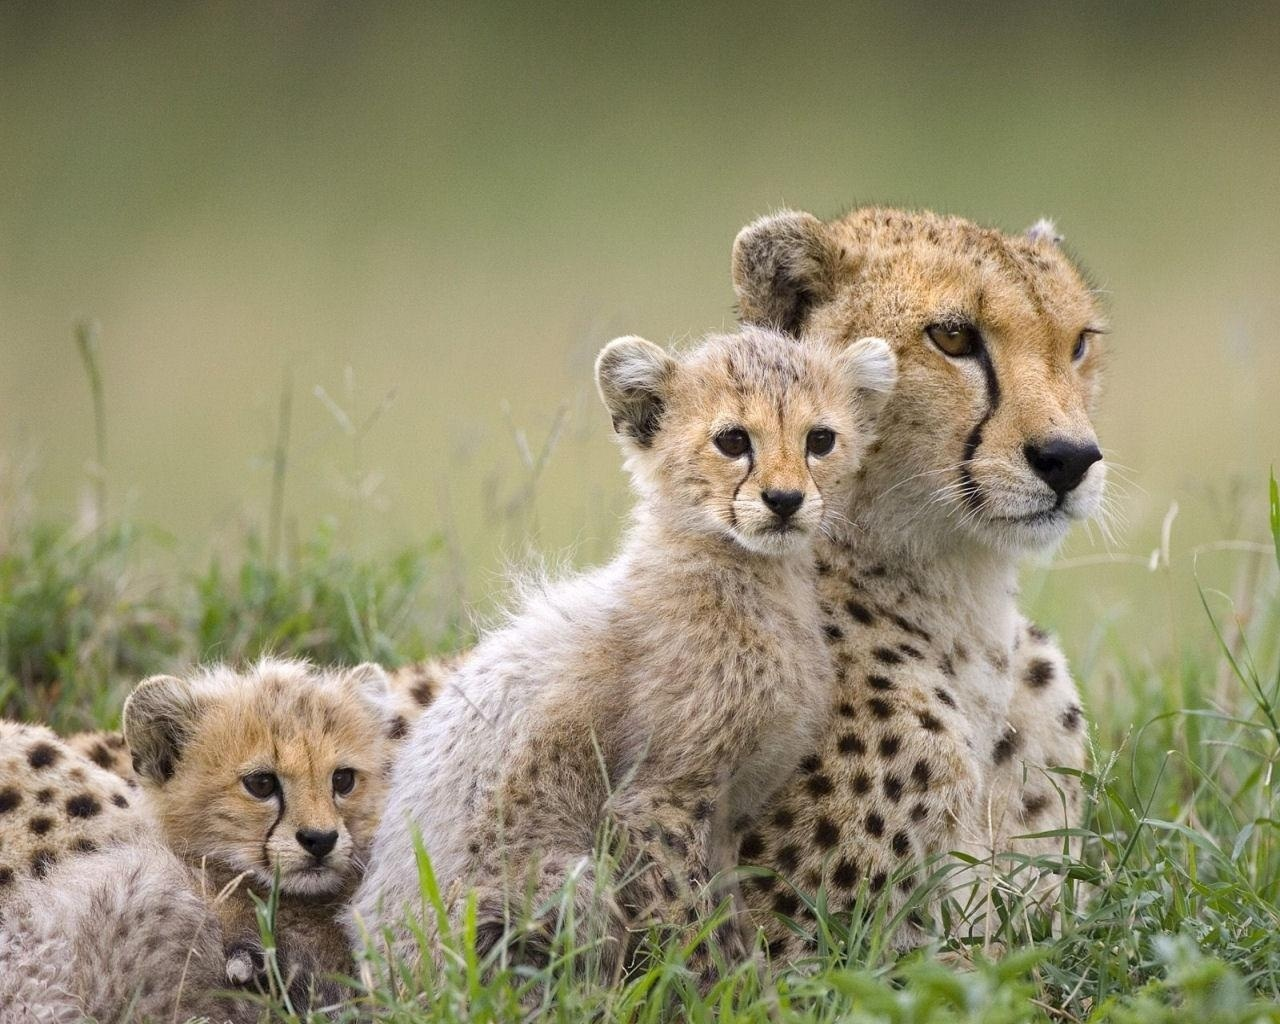 external image Cheetah-Family-wild-animals-2603080-1280-1024.jpg